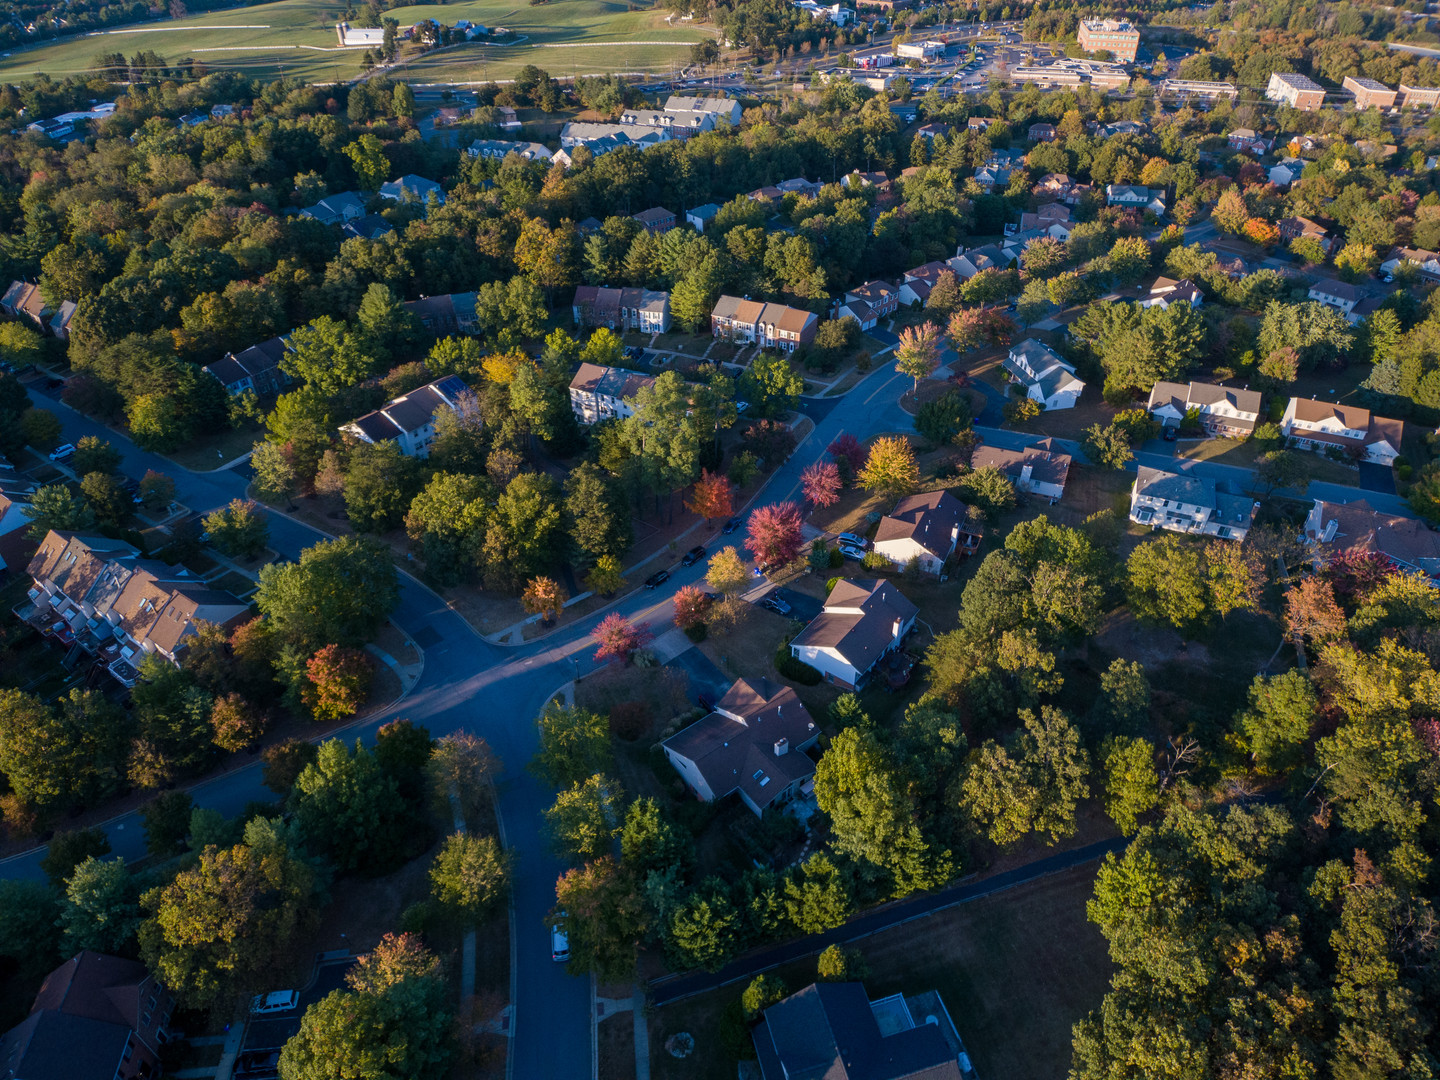 Aerial view of fall foliage in Rockville